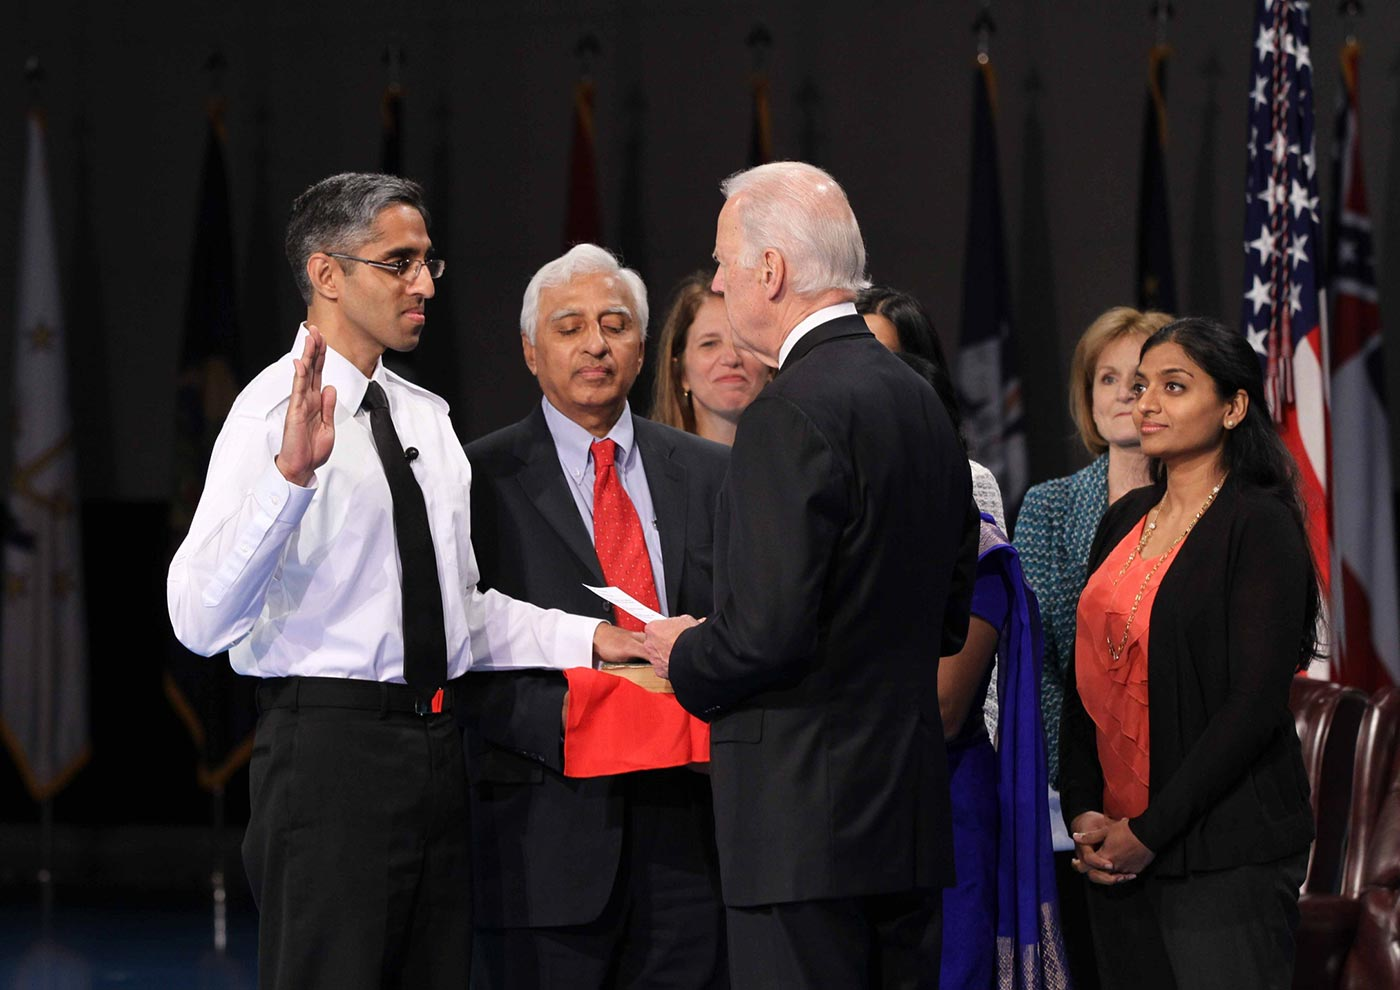 Vivek Murthy, with hand on bible and other hand raised, is sworn in as Surgeon General of the United States.